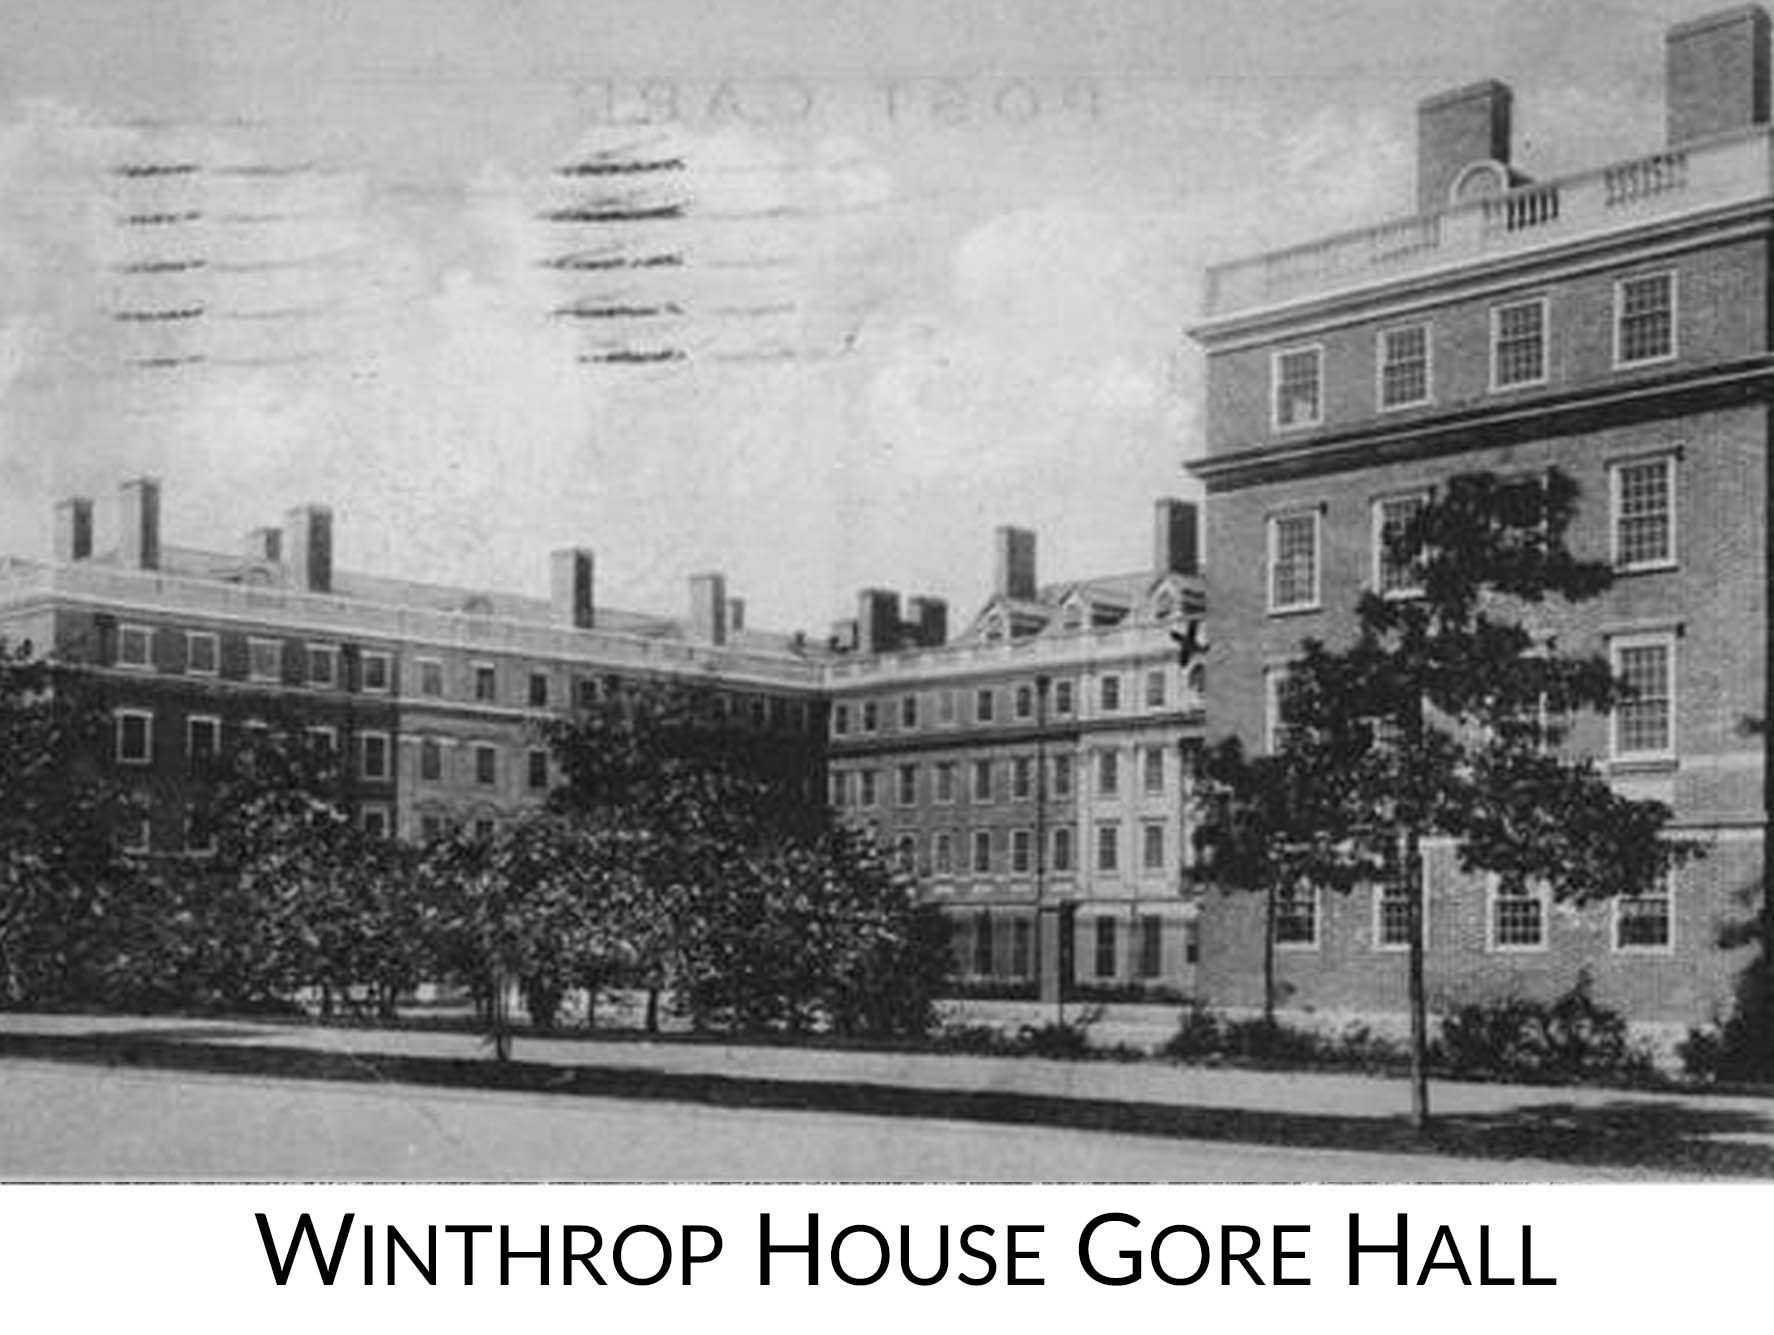 winthrop-house-gore-hall-icon.jpg